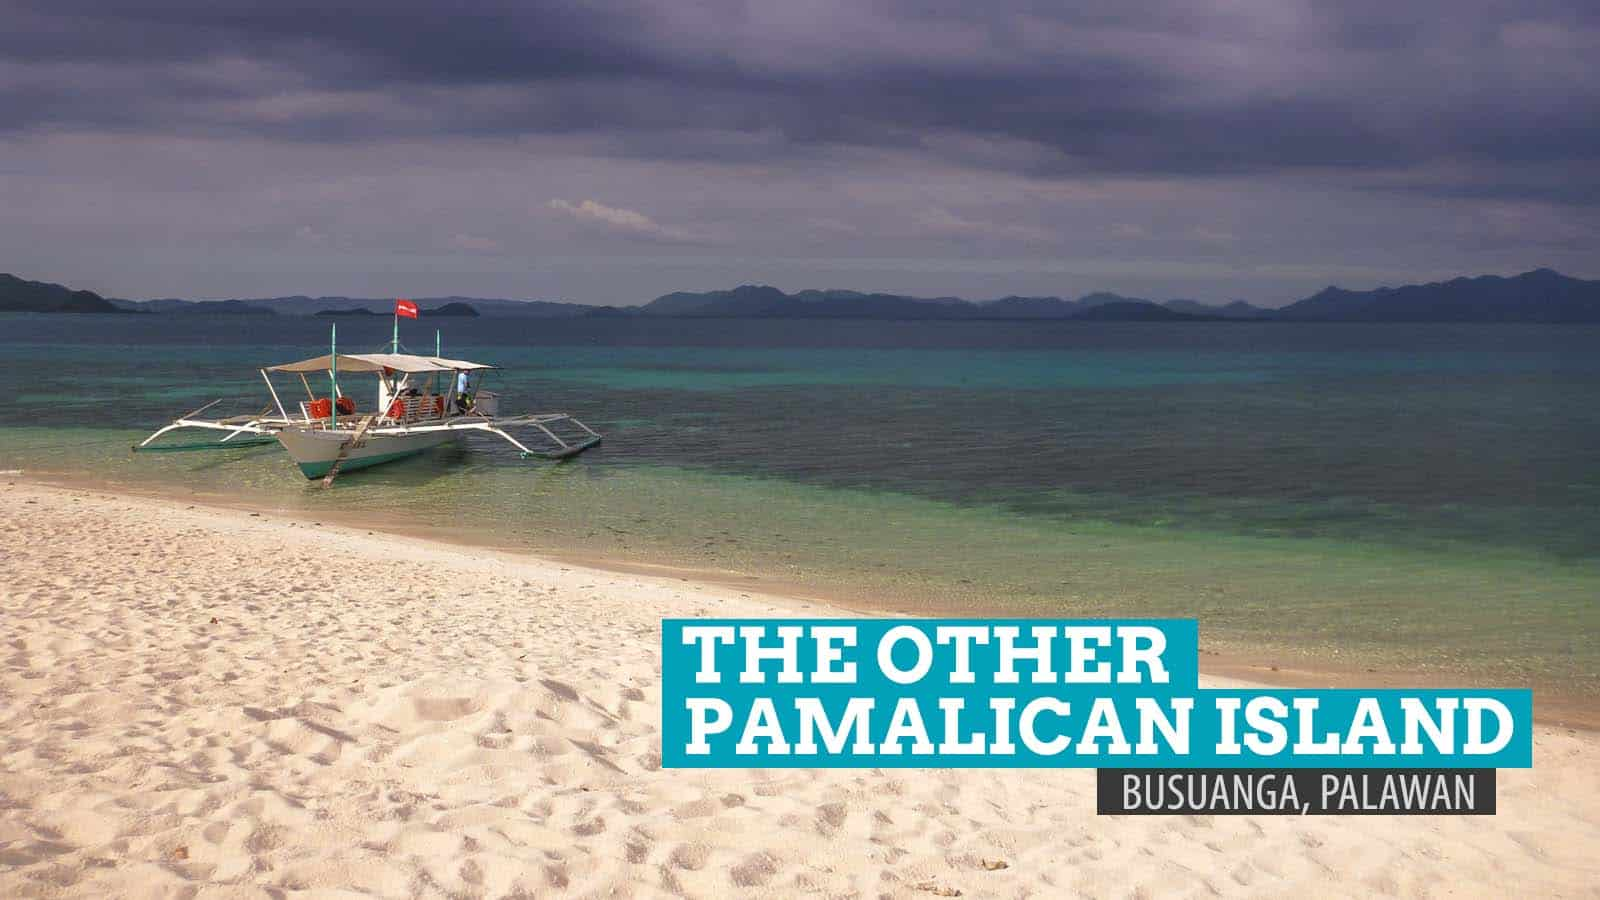 The Other Pamalican Island in Busuanga, Palawan, Philippines